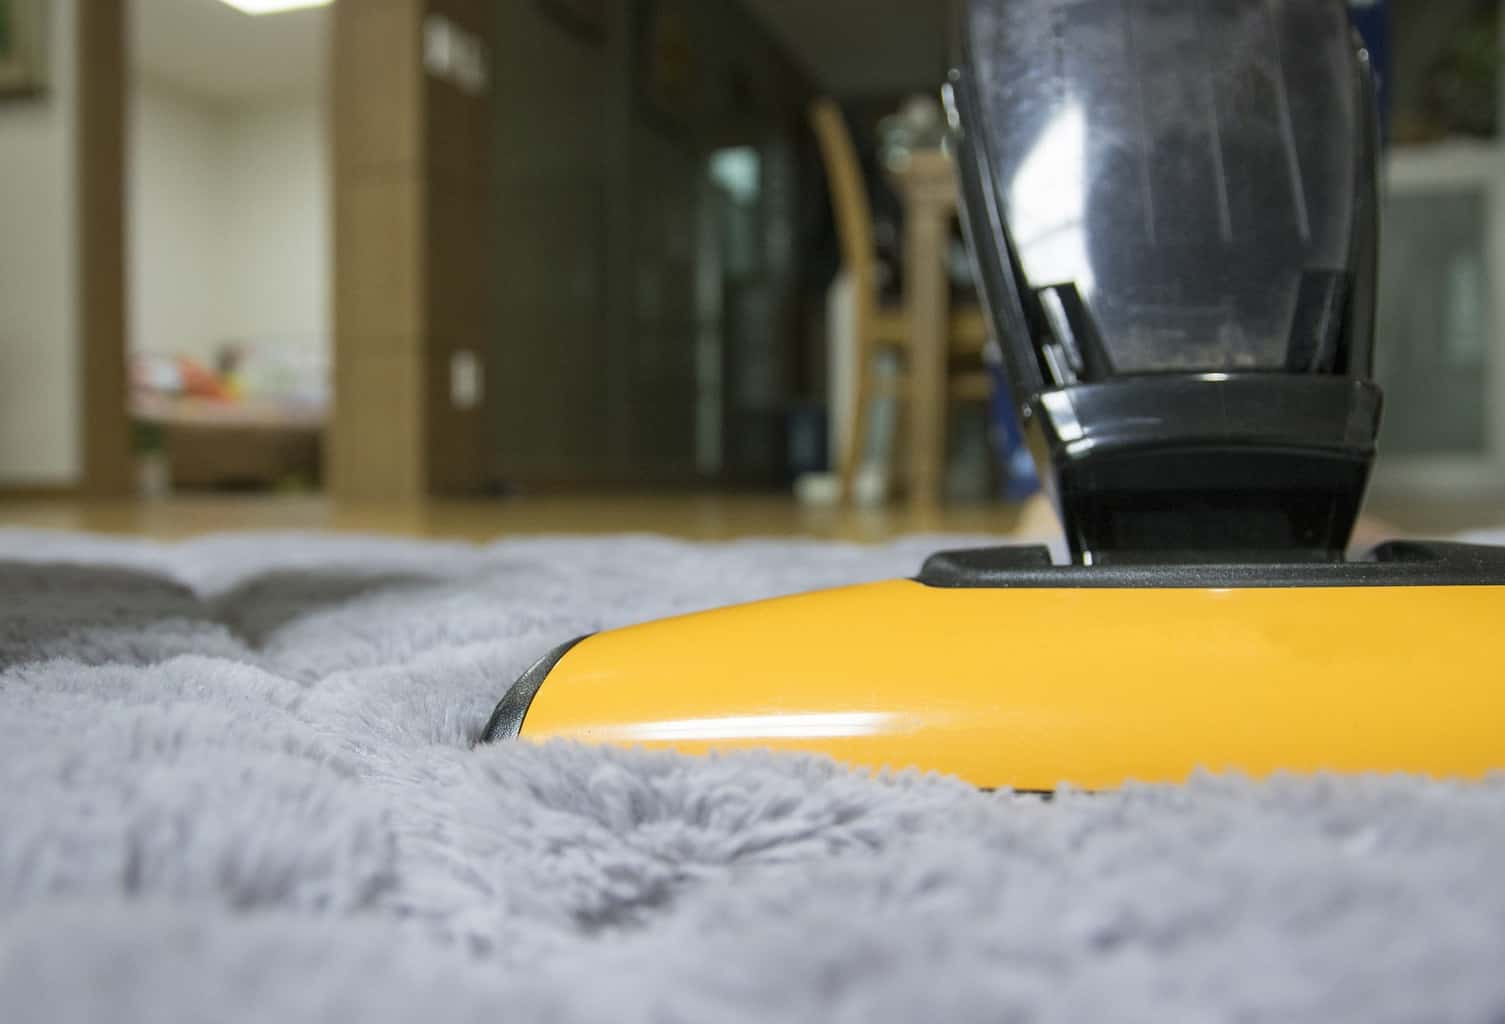 Vacuum cleaning a carpeted floor